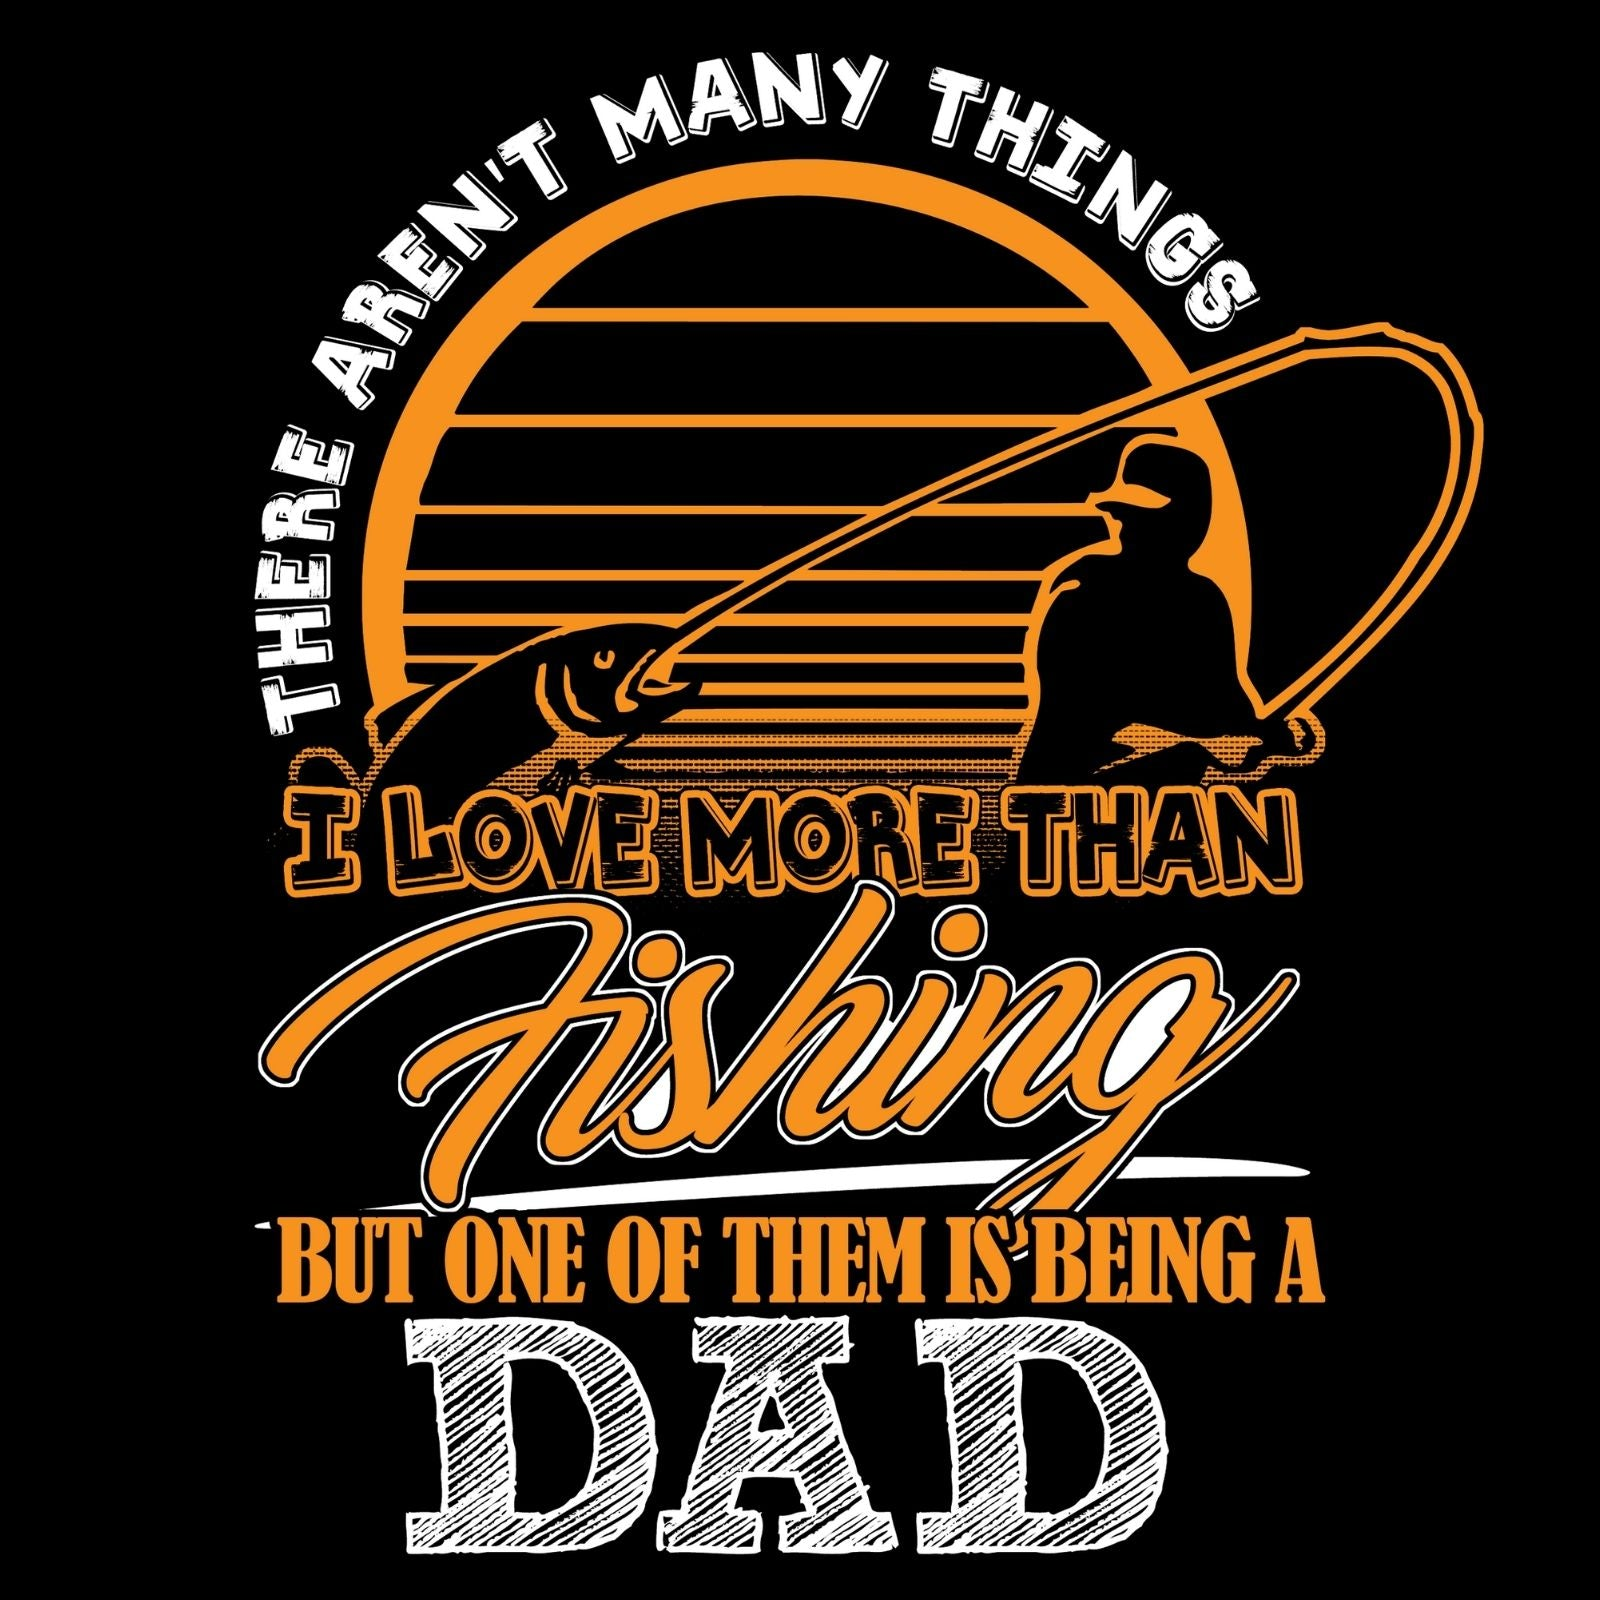 There Aren't Many Things I Love More Than Fishing But One Of Them Is Being A DAD - Bastard Graphics